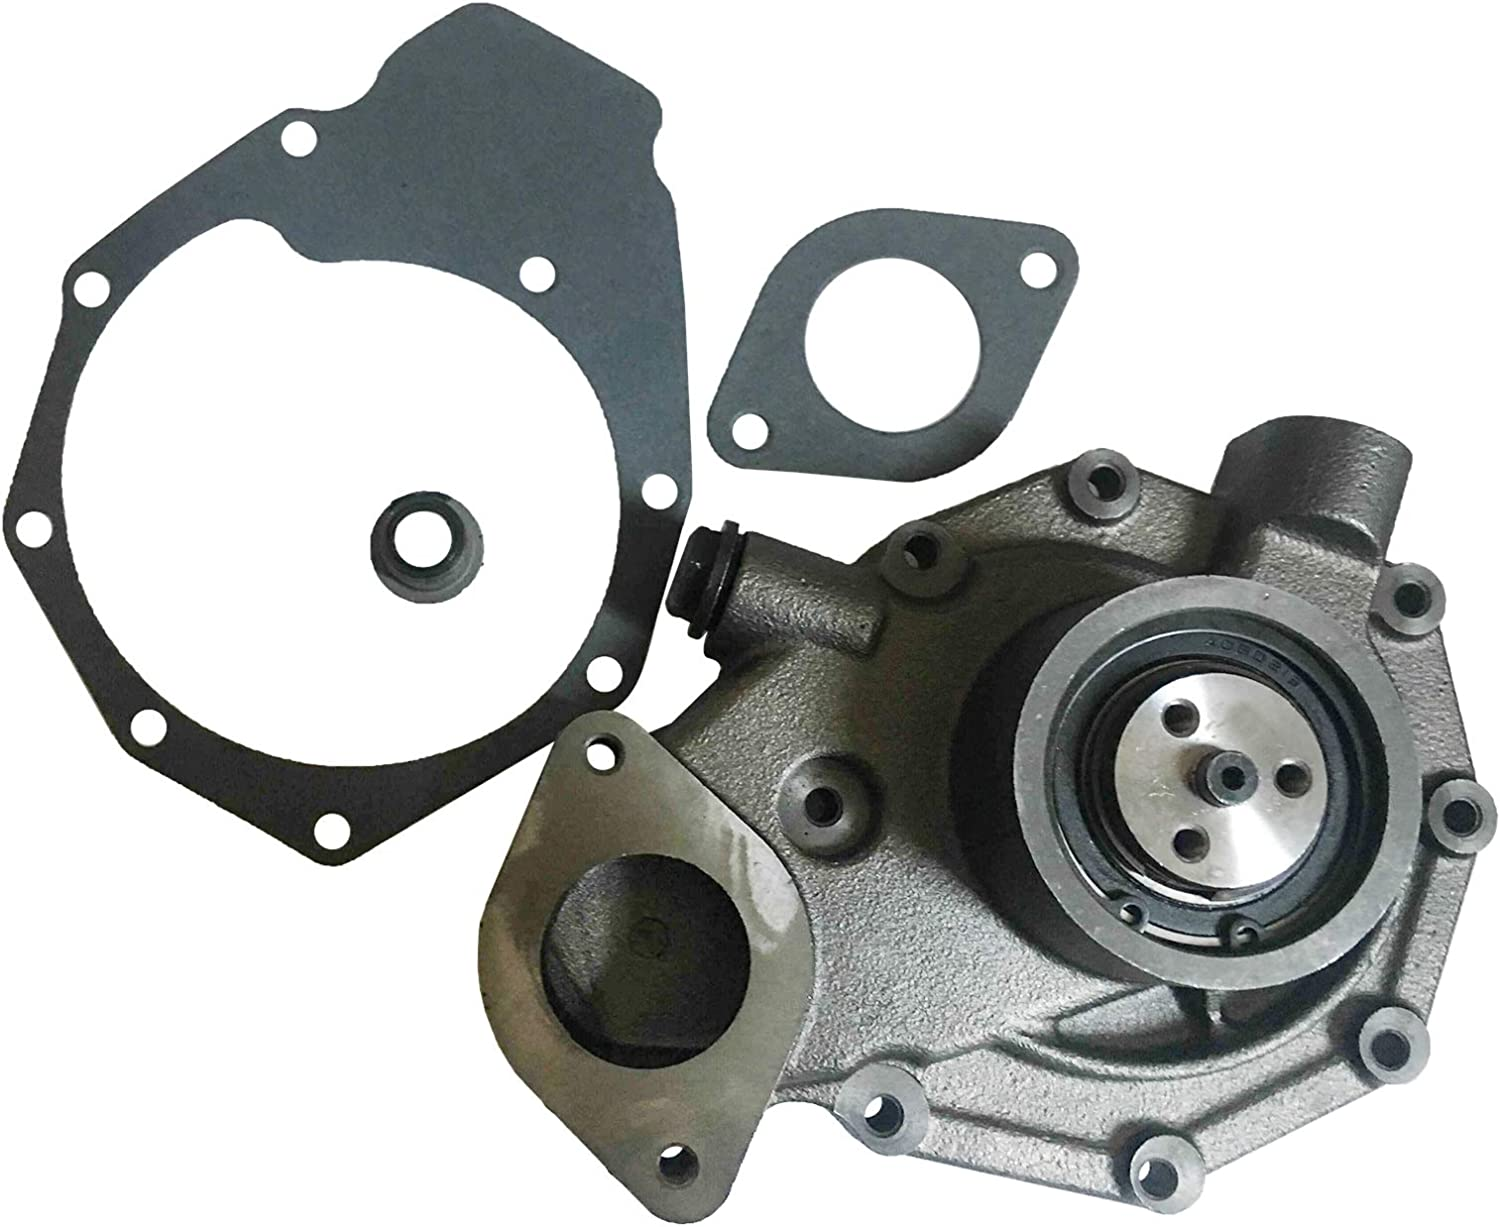 zt truck parts Water Pump RE505981 R503509 Fit for John Deere 310E 310G 310J 310K 310SJ 310SK 315SJ 315SK 325J 325K 325SK 410G 410J 410K 710D 710G 710J Backhoe Loader